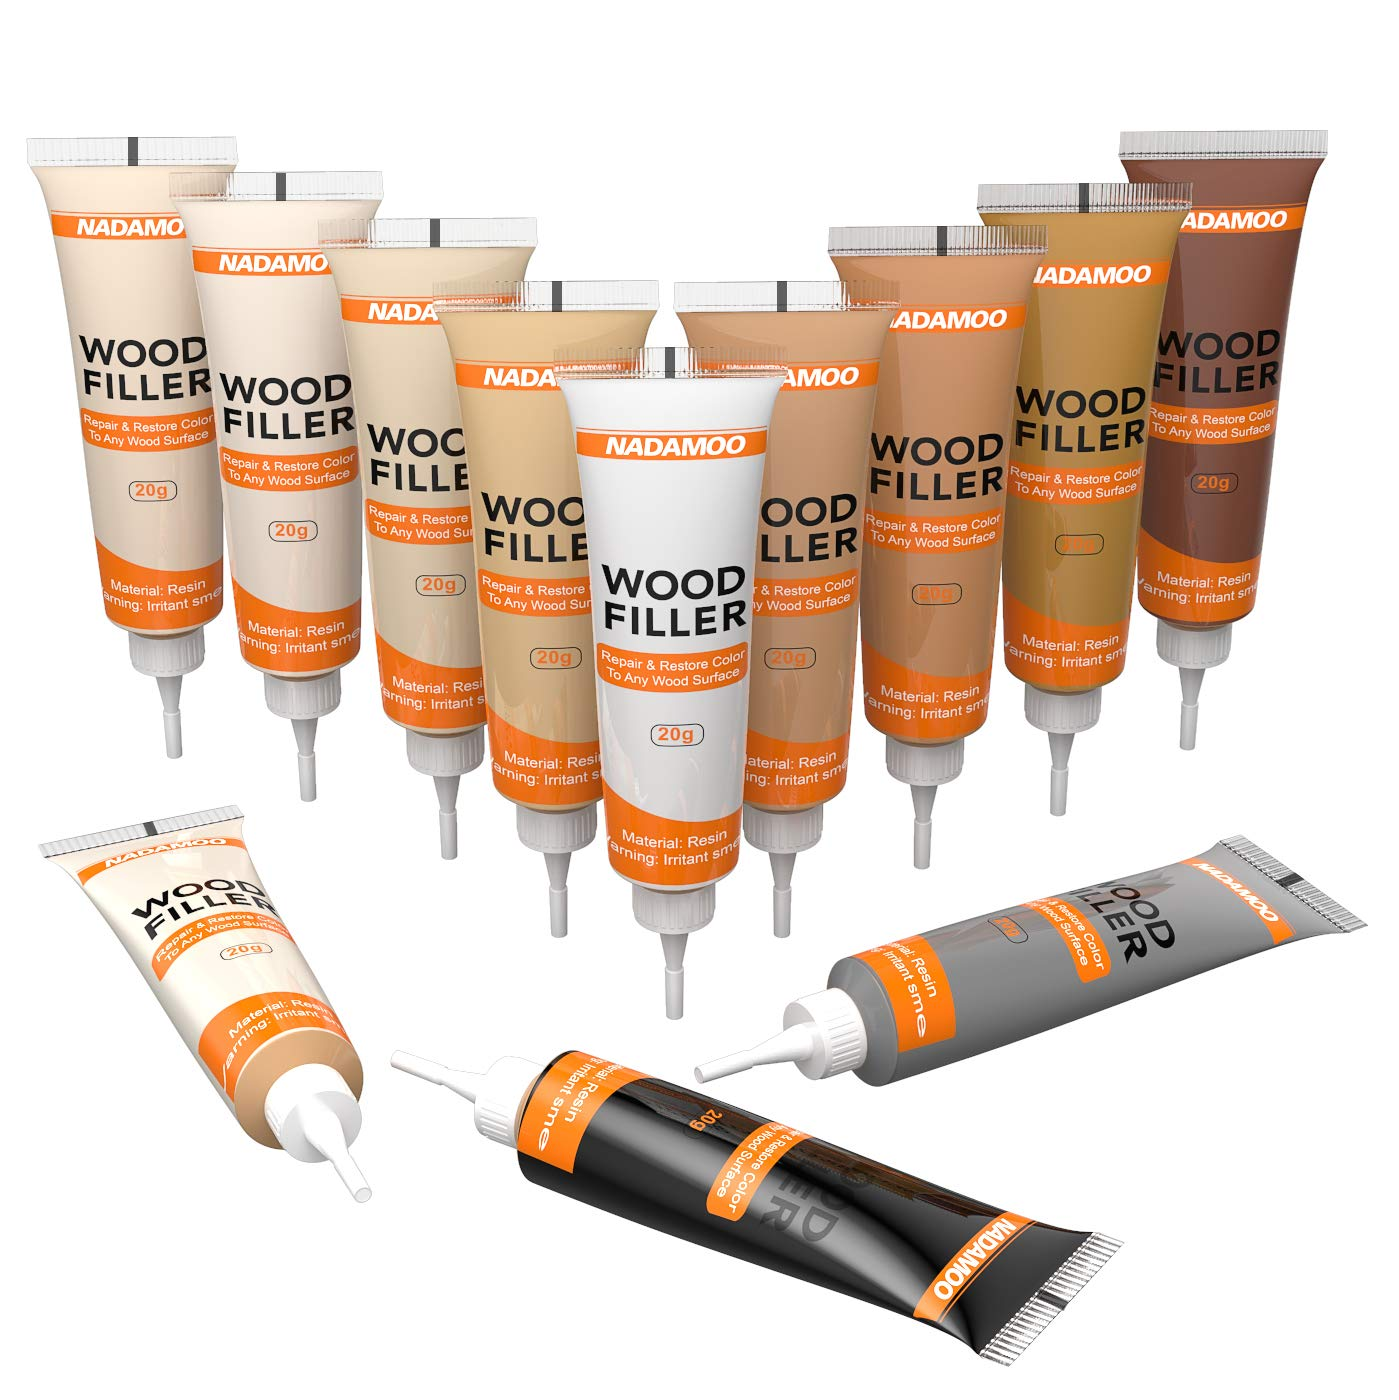 NADAMOO Wood Filler Furniture Repair Kit Wood Scratch Repair Furniture Touch Up Kit Cover Surface Scratch for Wooden Floor Table Door Cabinet Veneer, 12 Light Color Kit Black White Gray Oak Maple